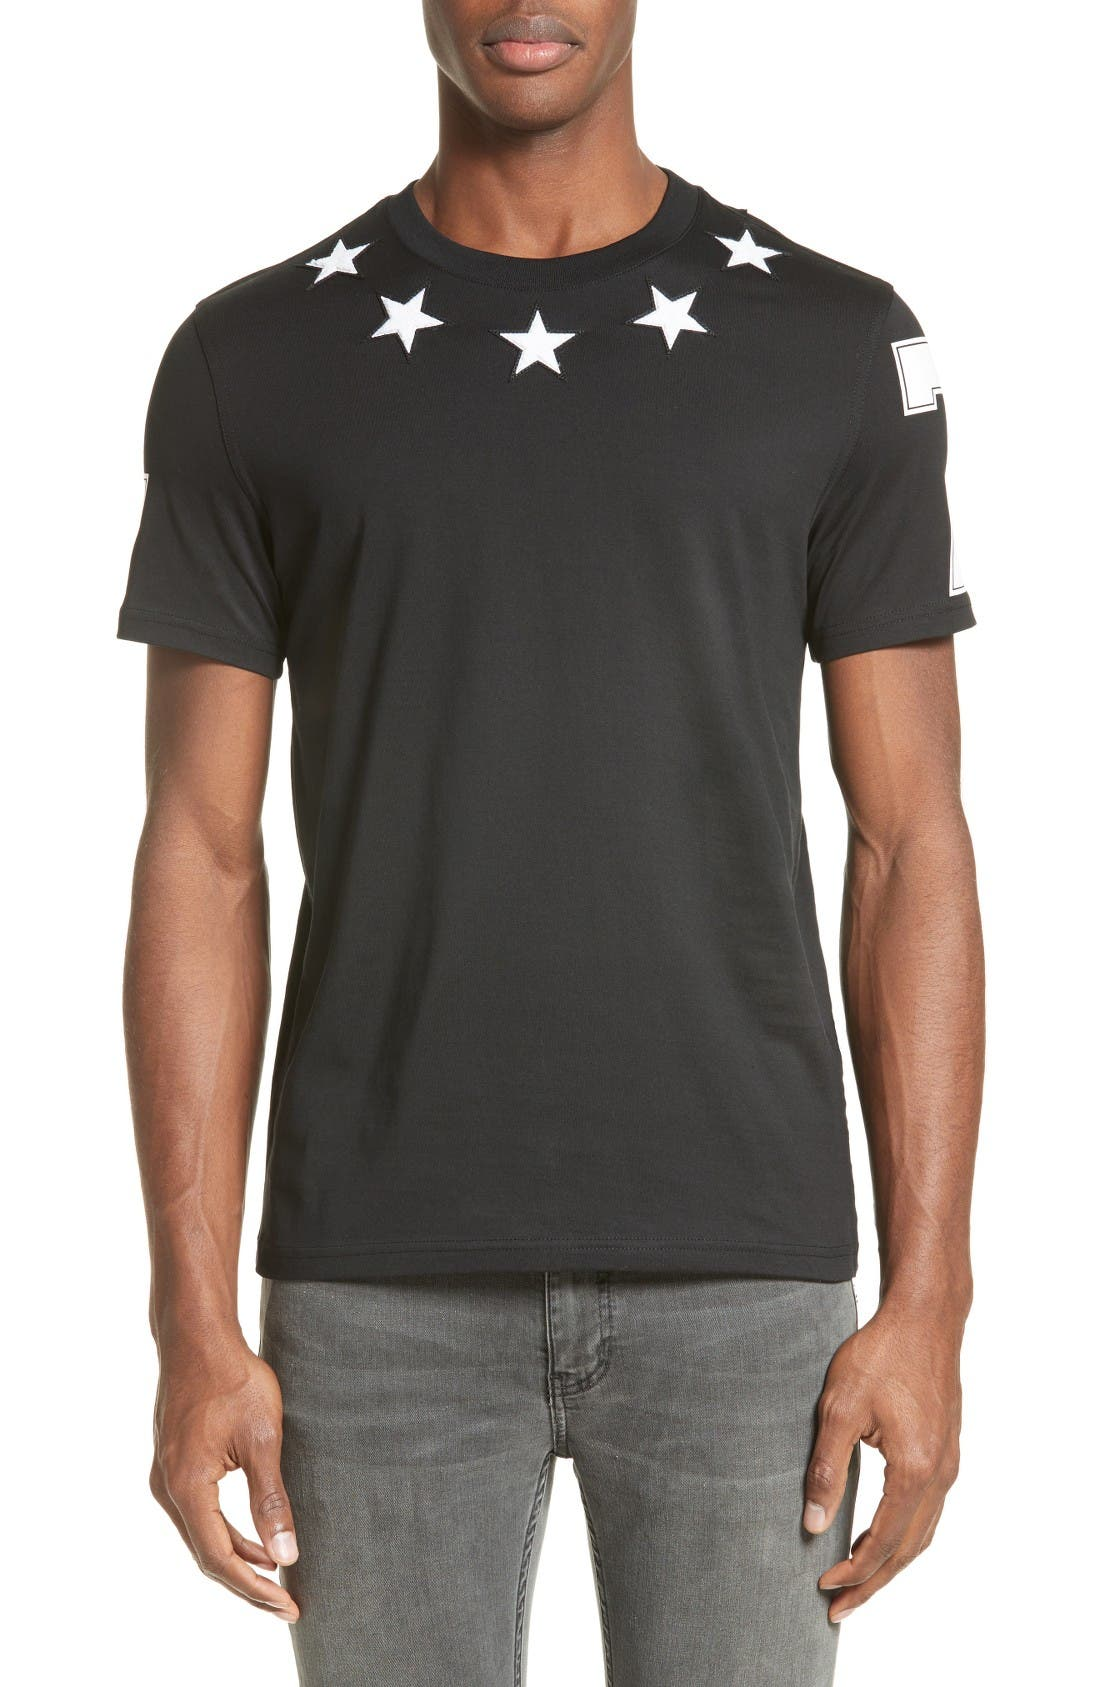 Star 74 T-Shirt,                             Main thumbnail 1, color,                             Black